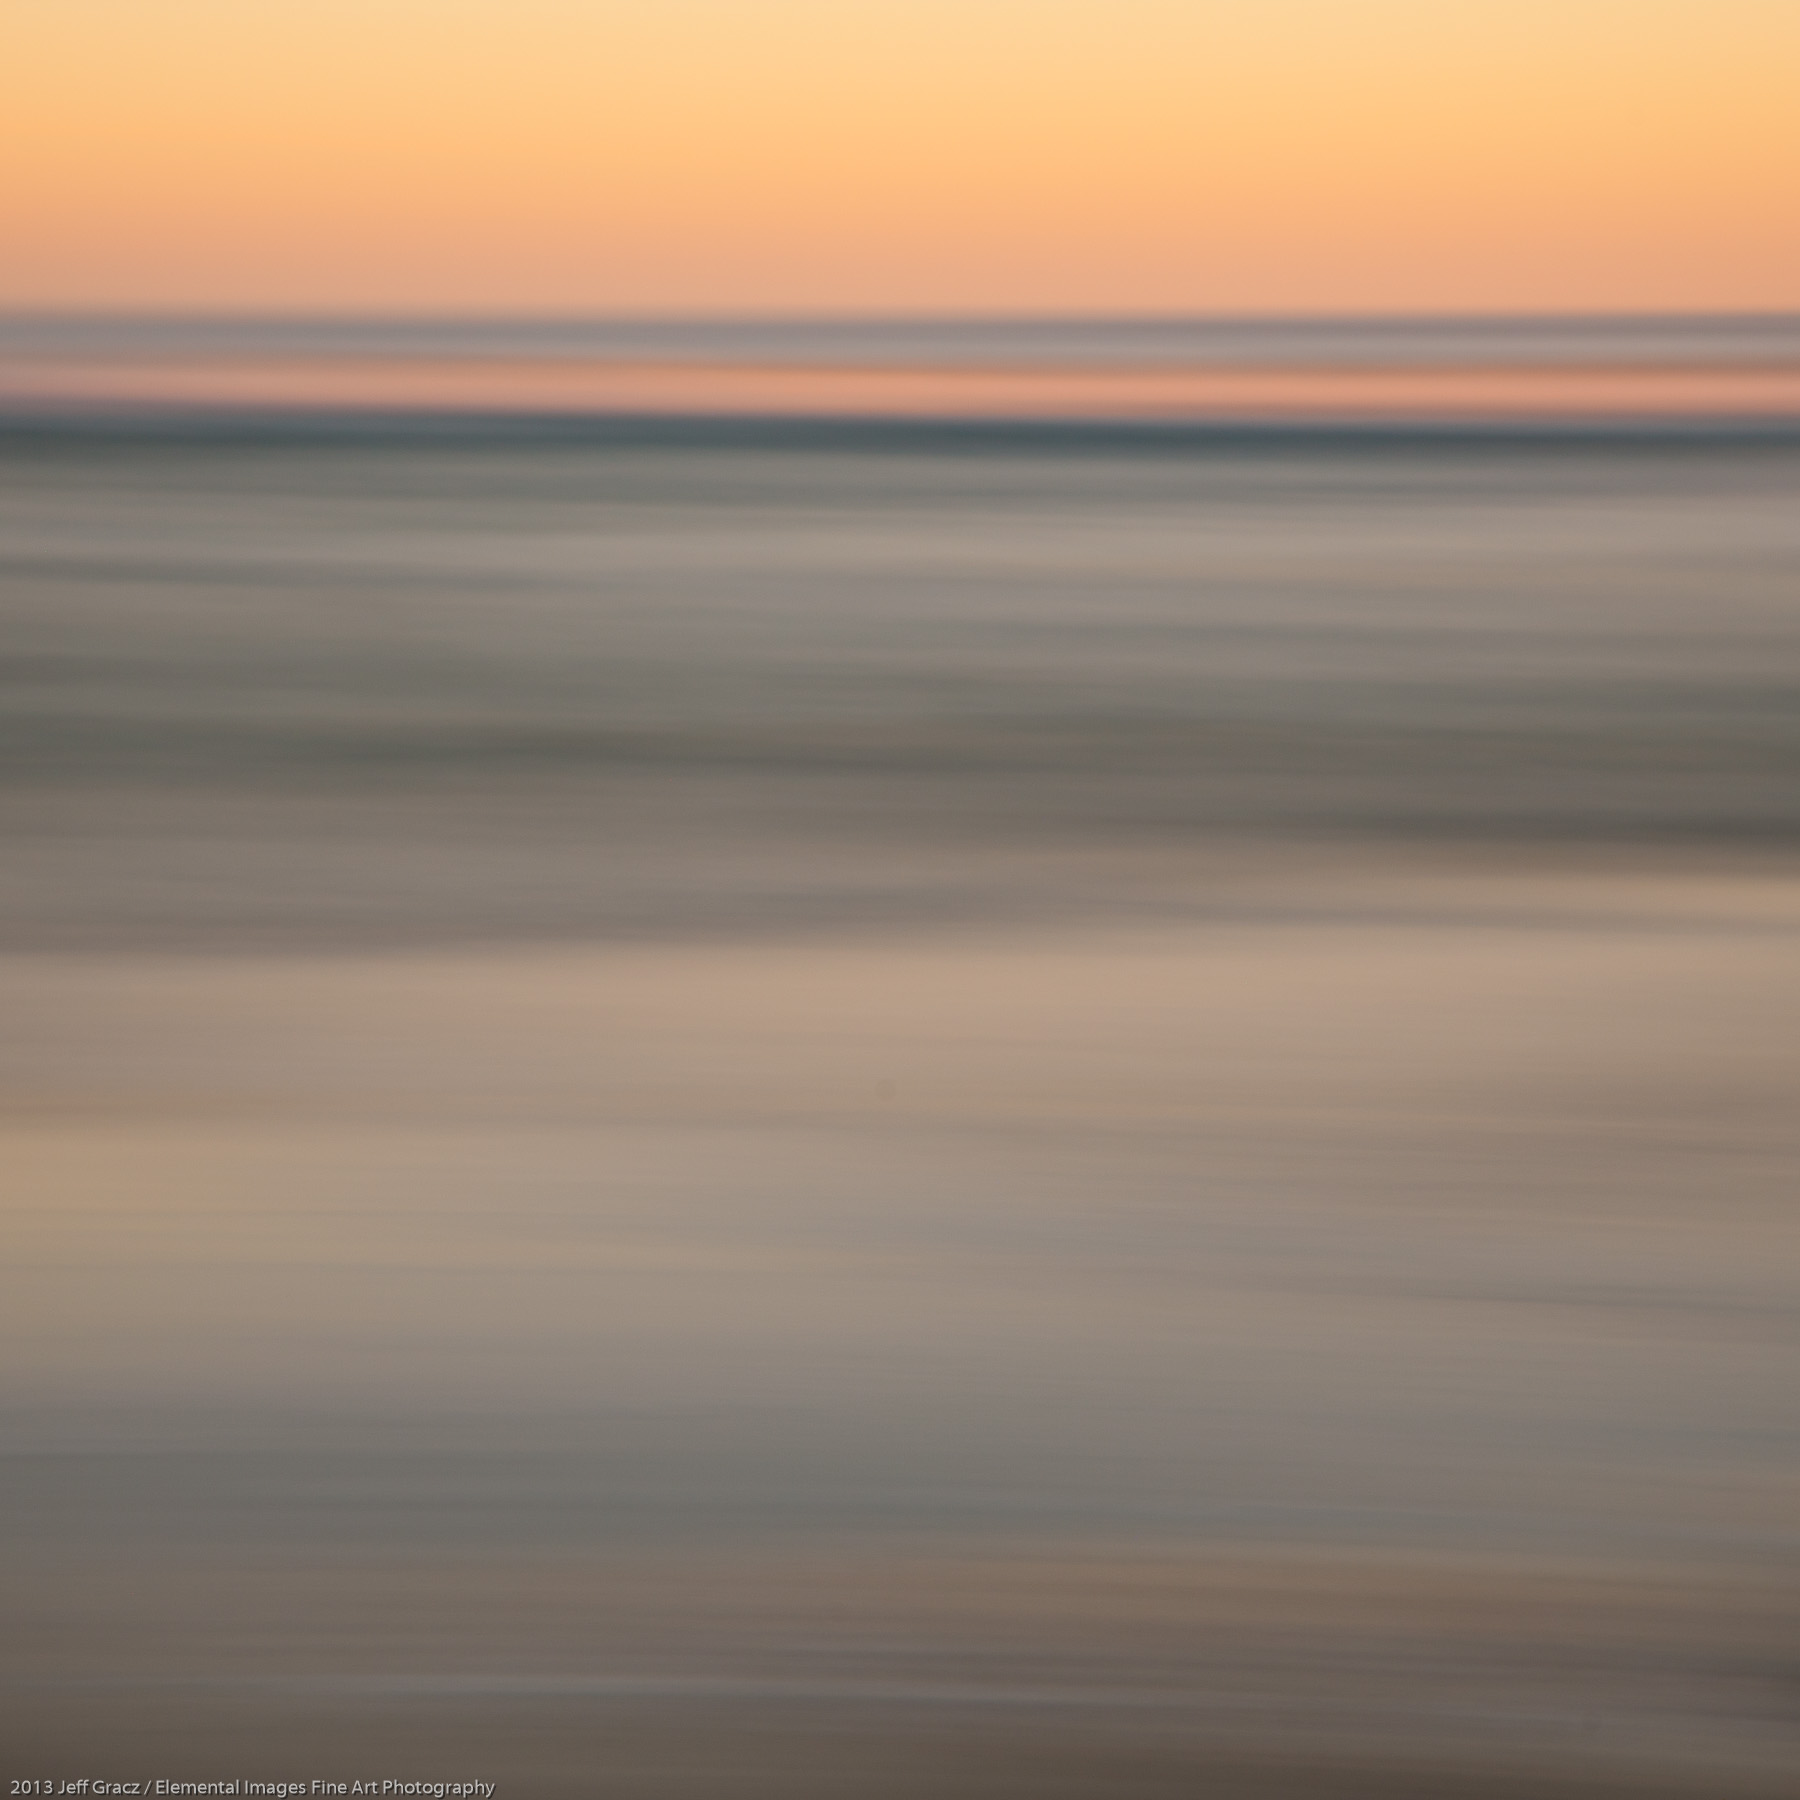 Sea and Sky XXVII | D River State Wayside | OR | USA - © 2013 Jeff Gracz / Elemental Images Fine Art Photography - All Rights Reserved Worldwide